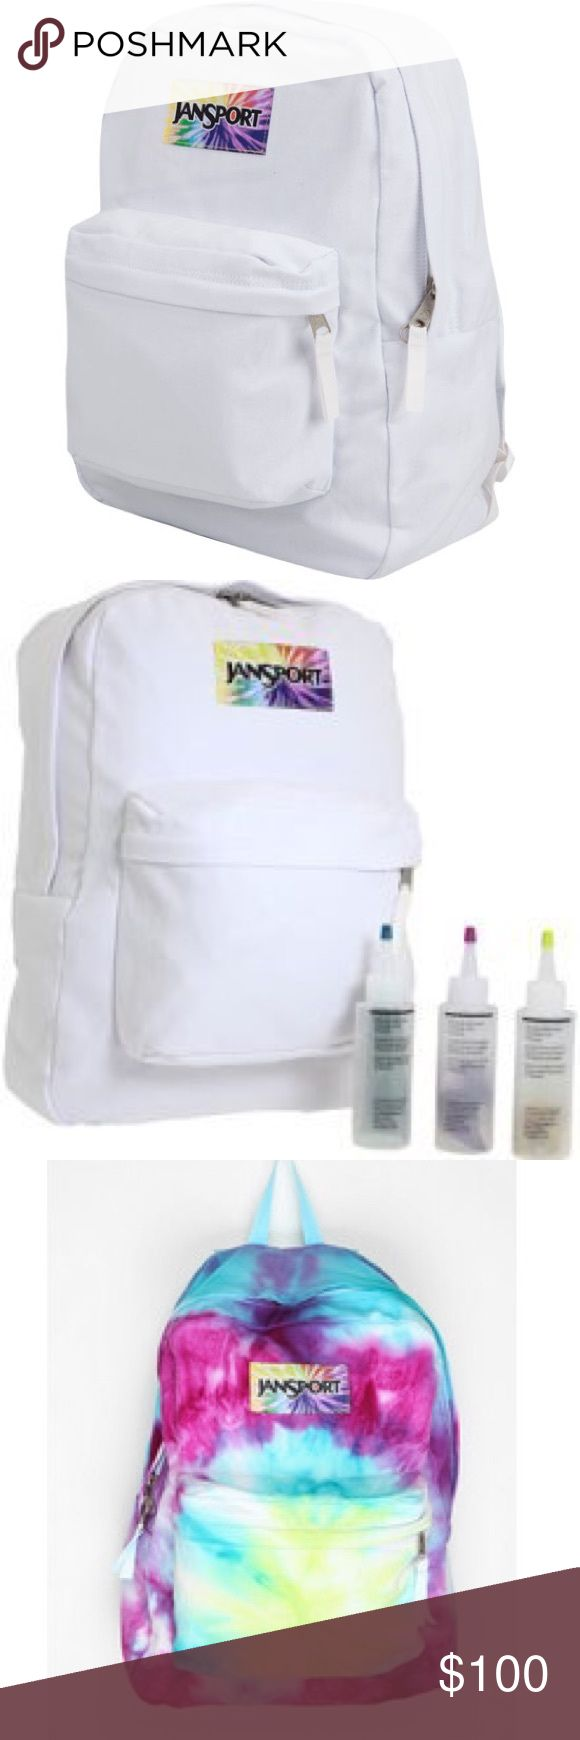 Jansport White To Dye For Tie Tye Dye backpack Jansport Limited edition backpack. Pure white. Tie dyed logo. This backpack can be kept white, but is meant for tye-dying. It has white straps so they can be dyed too. Silver zipper pulls. One large main compartment, one front zipper compartment. Last two pics are examples of how you can tye dye it. The one you will receive has never been used. This is a full size backpack. (Not huge size for hiking) Does not come with dye shown. Dye colors can…